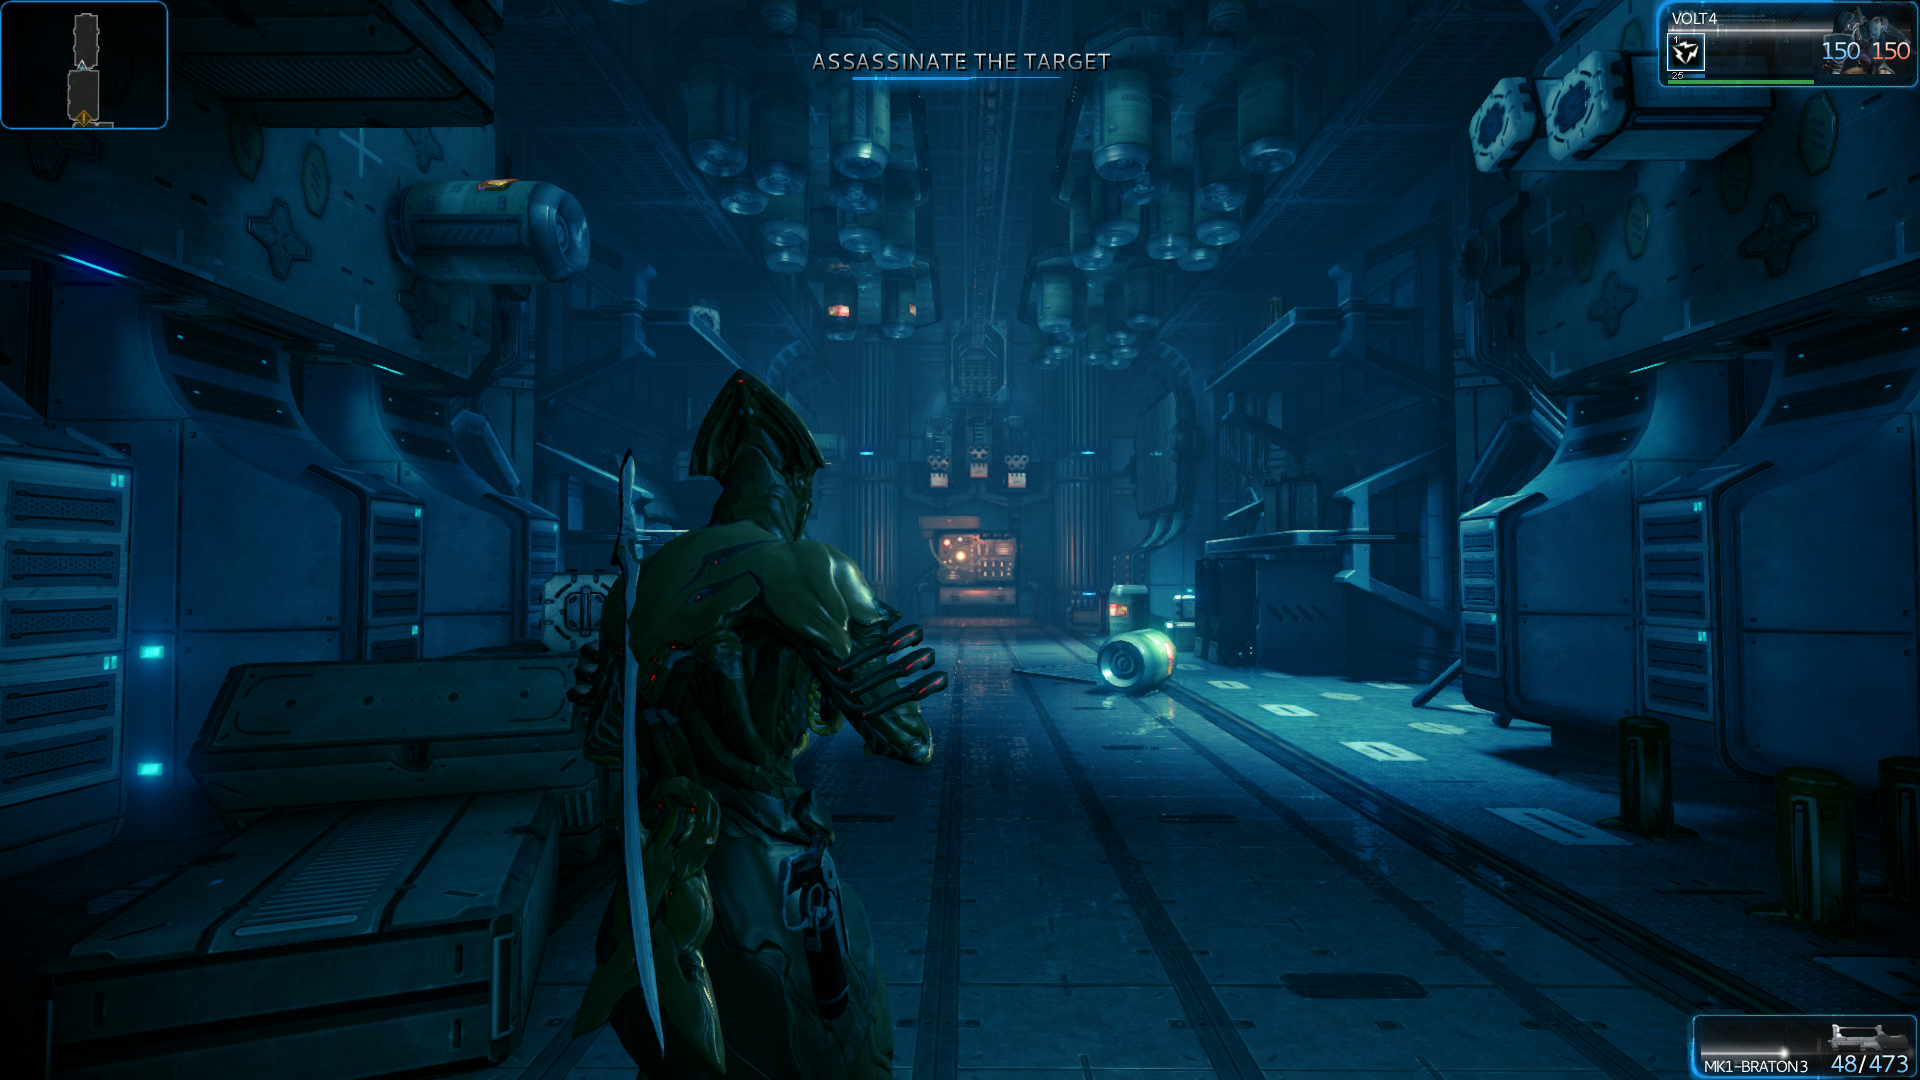 warframe2013-01-0212-pzkfd.png